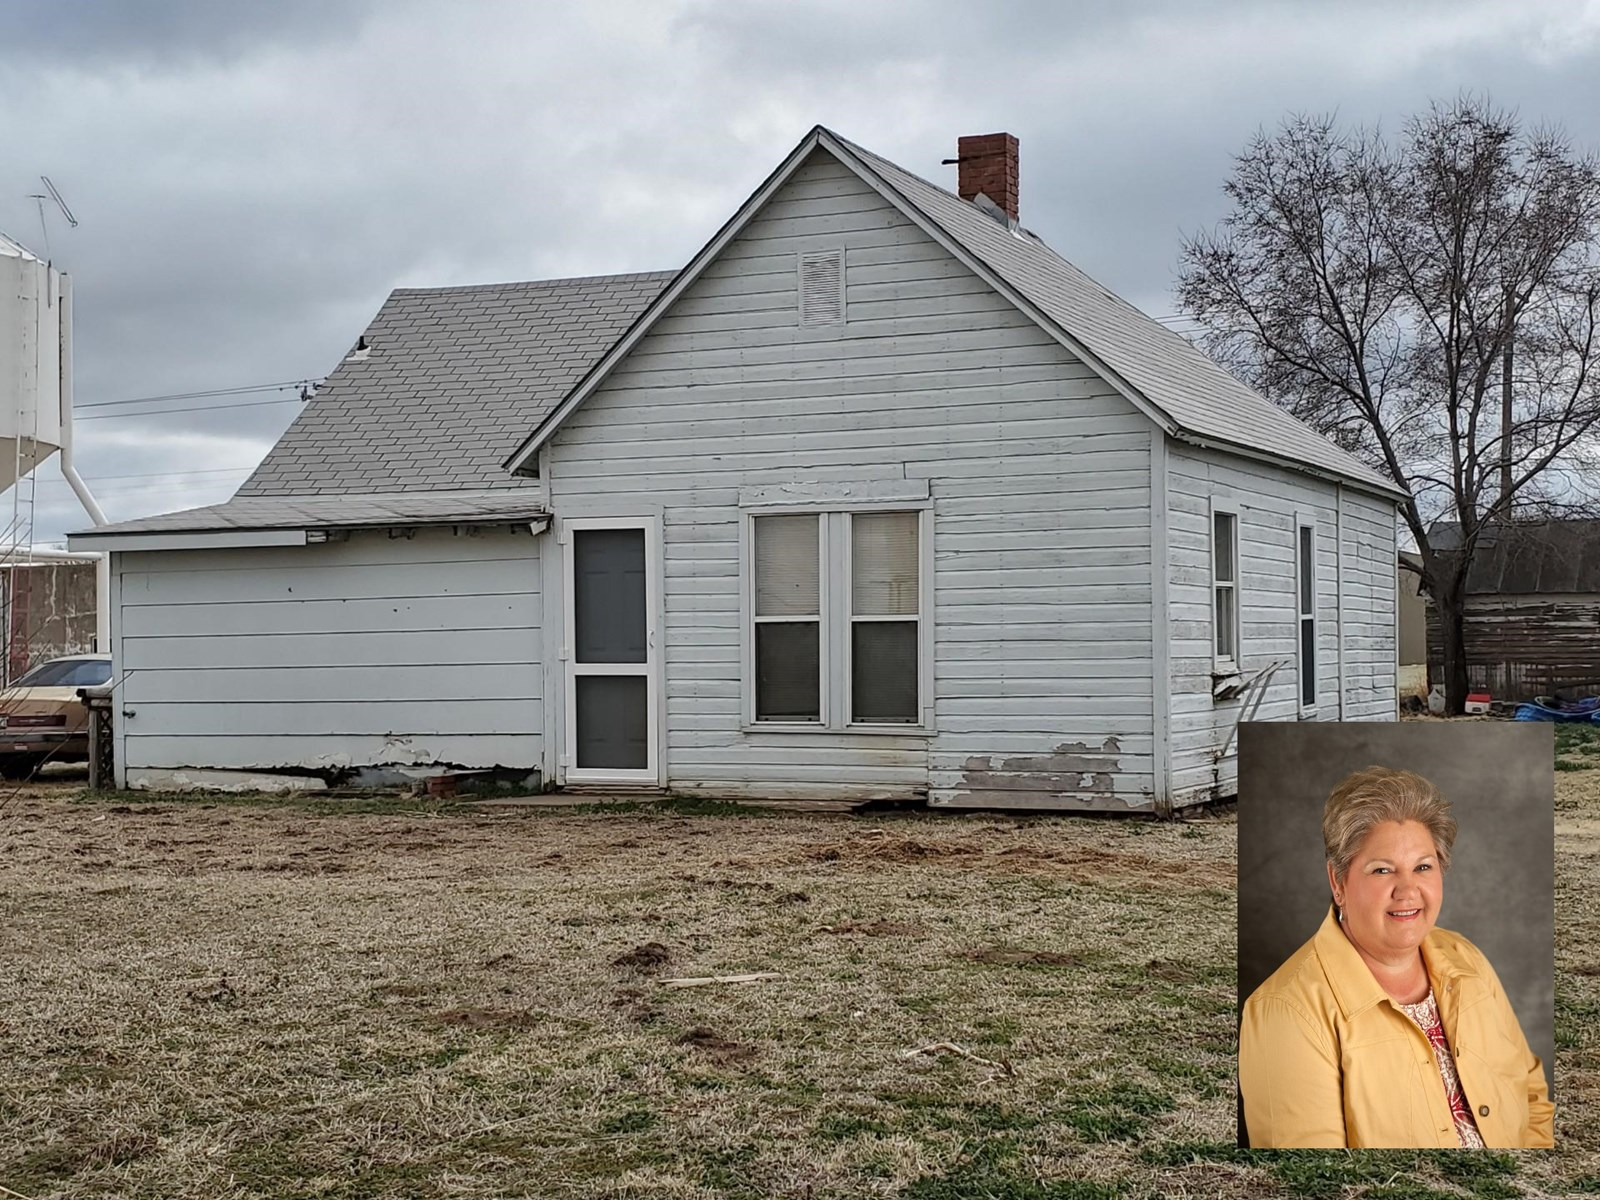 2 Bedroom Home For Sale in Alva, OK